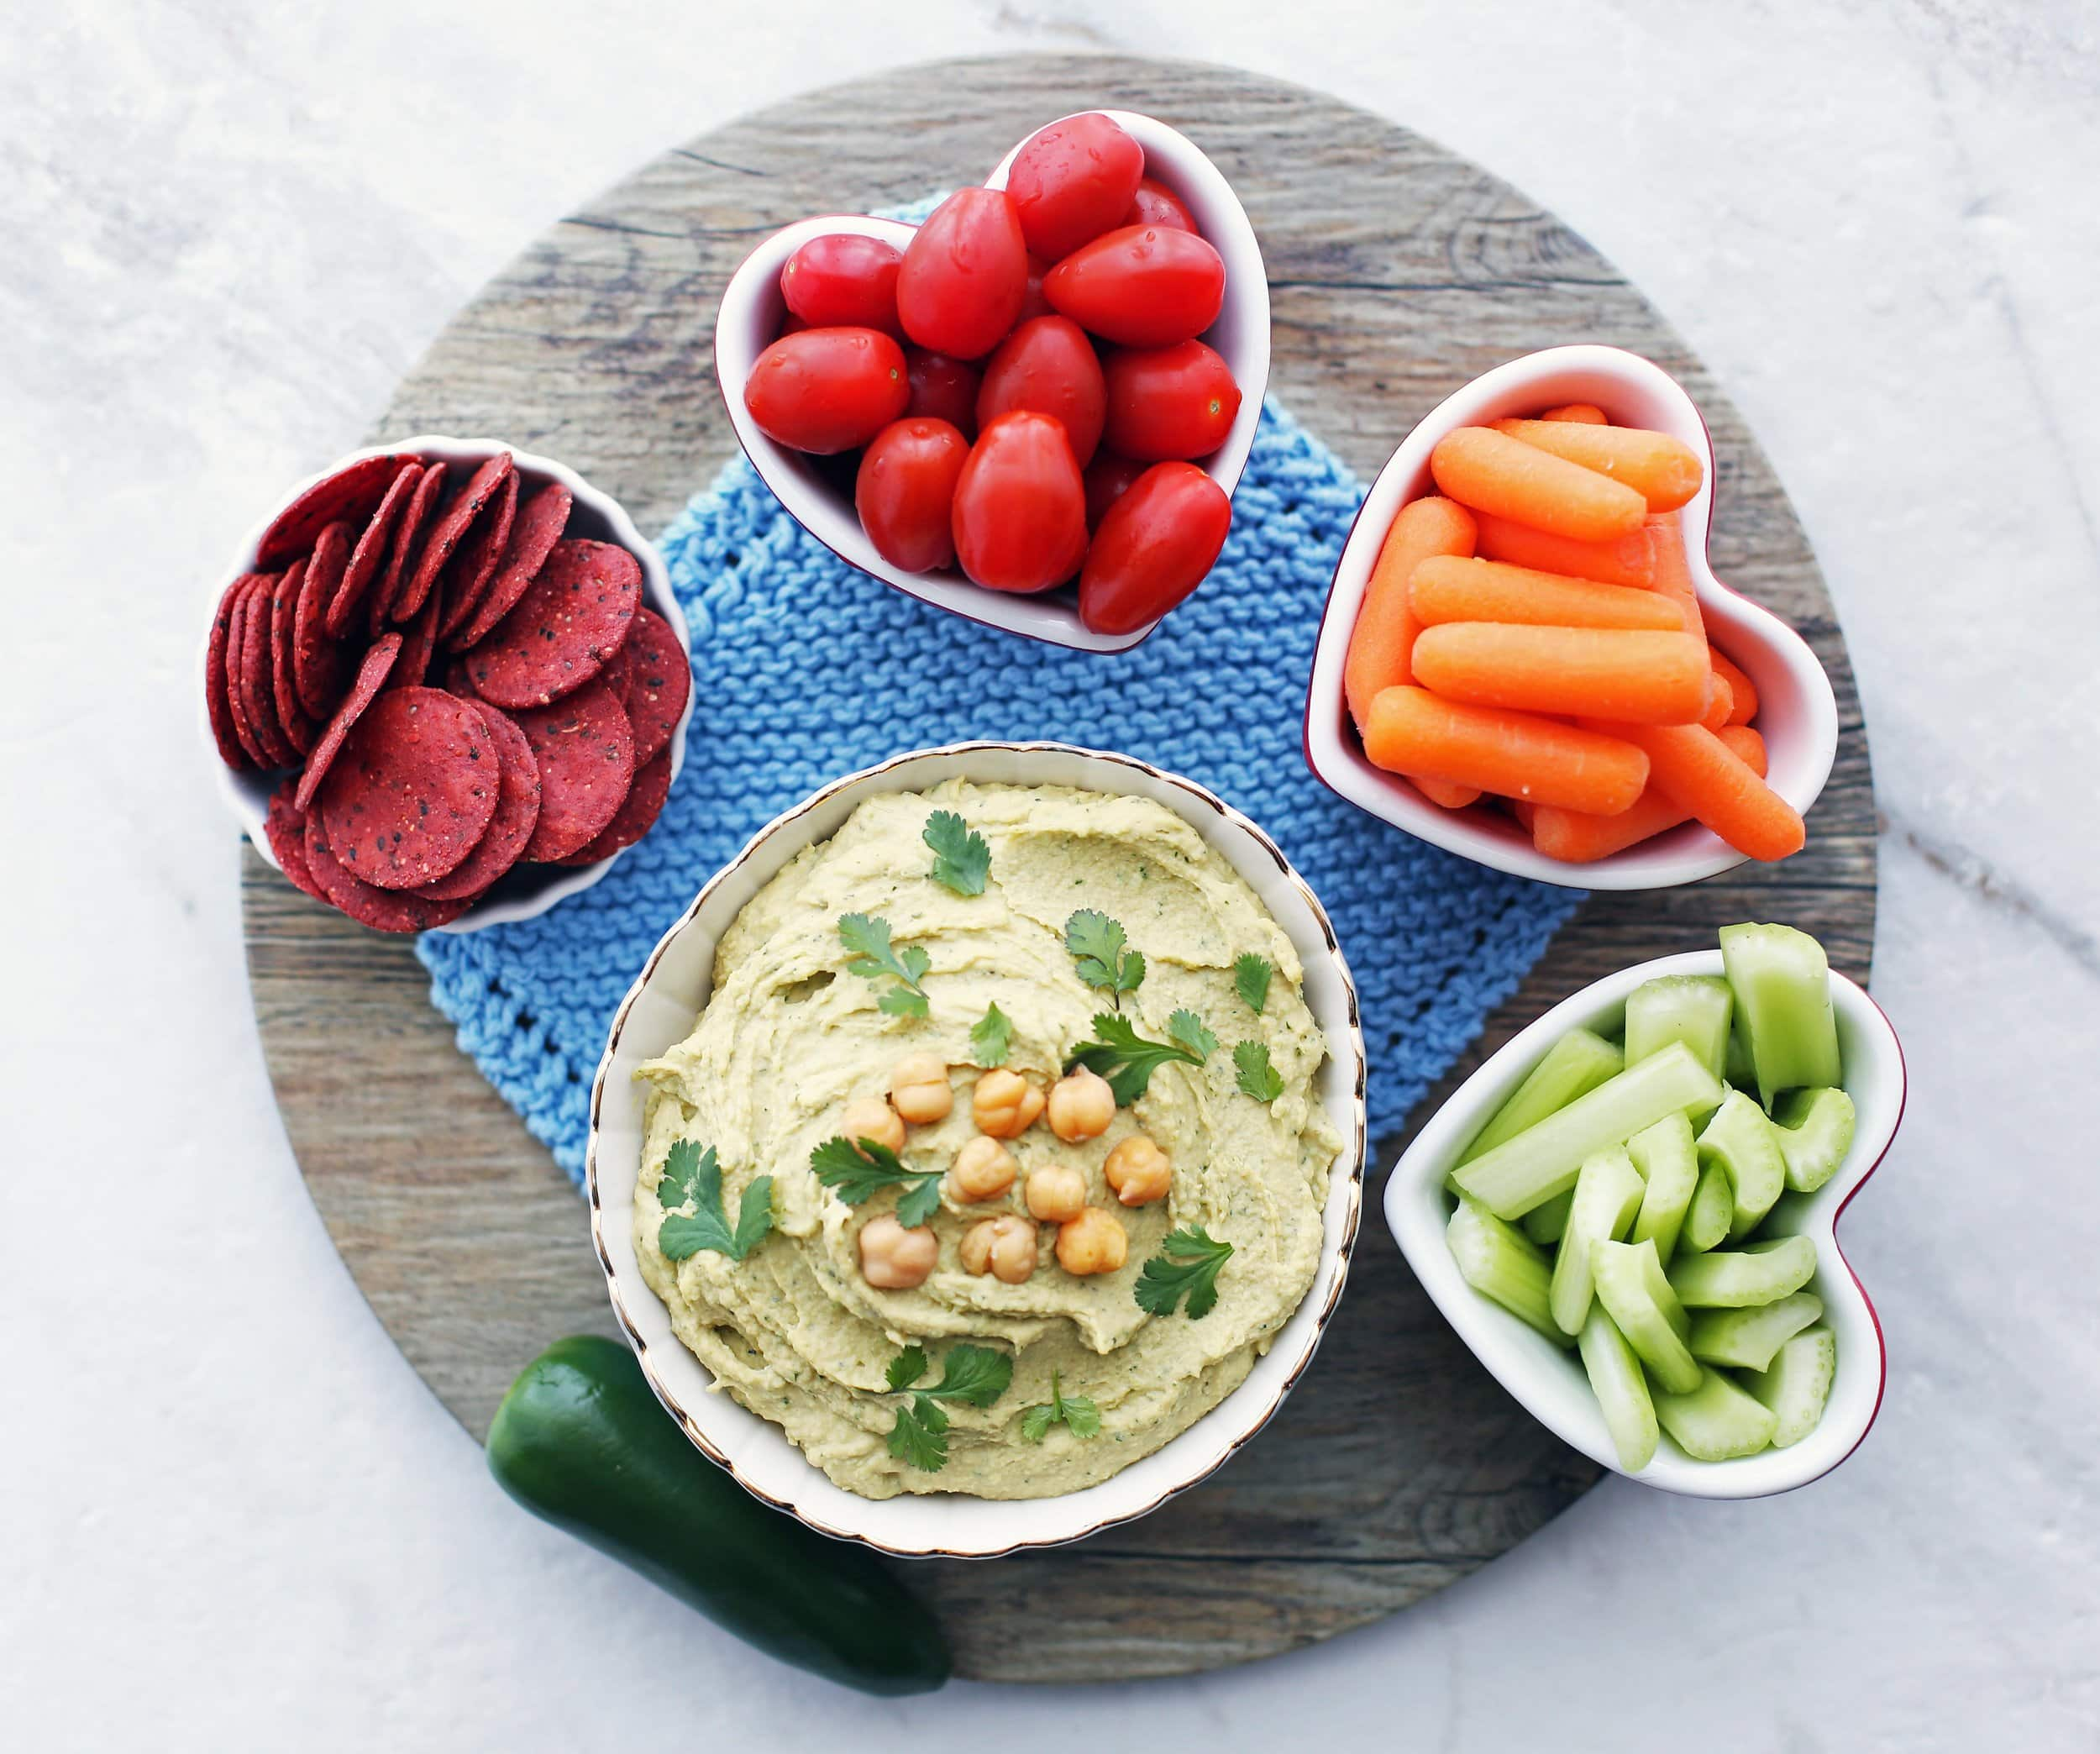 An overhead shot of a bowl of jalapeno cilantro hummus with carrots, tomatoes, celery, and crackers.